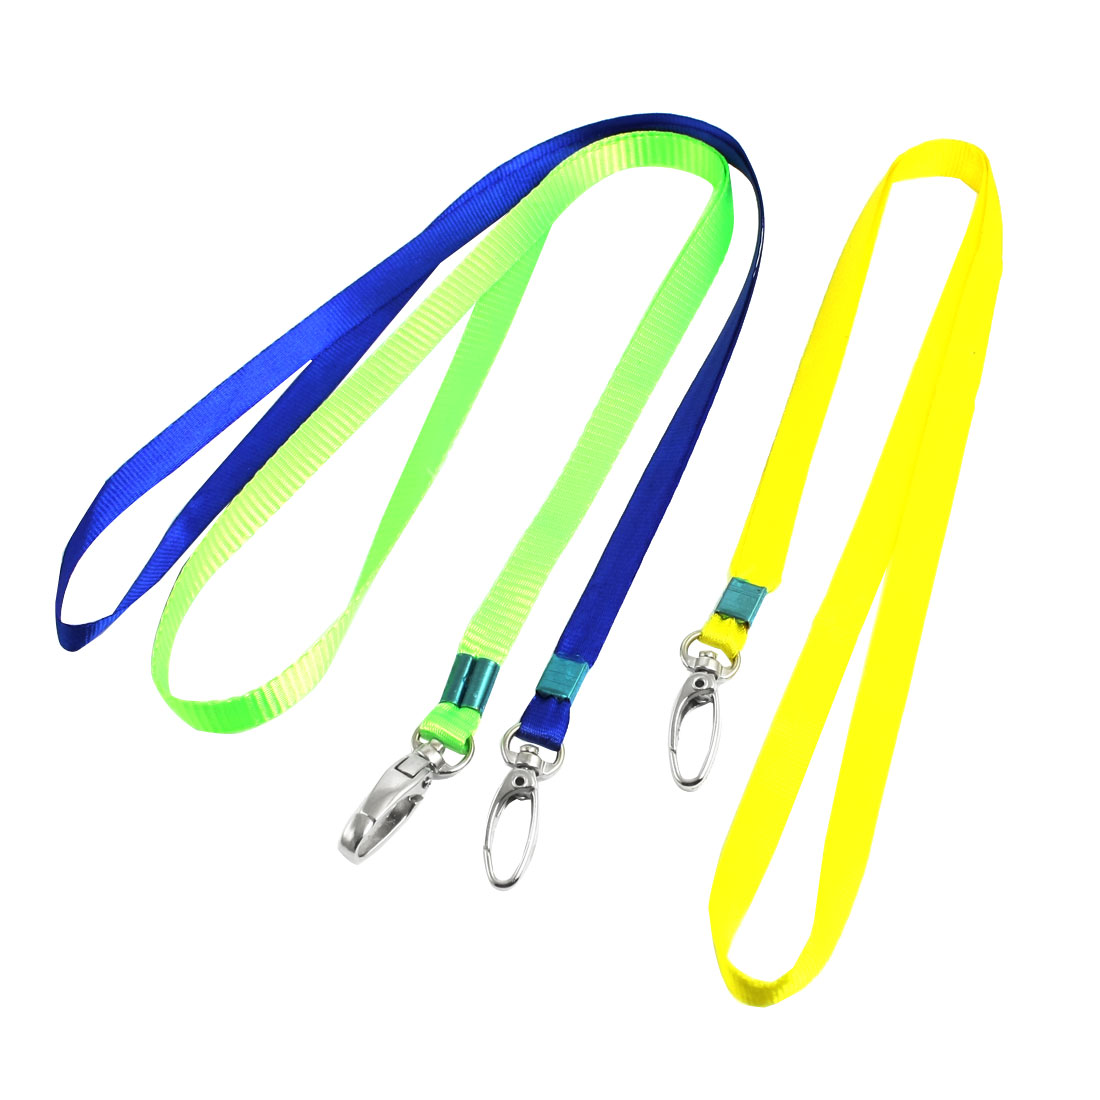 "Nylon Neck Strap Key Stripe Card Holder Lanyard String 16.1"" Length 3 Pcs"